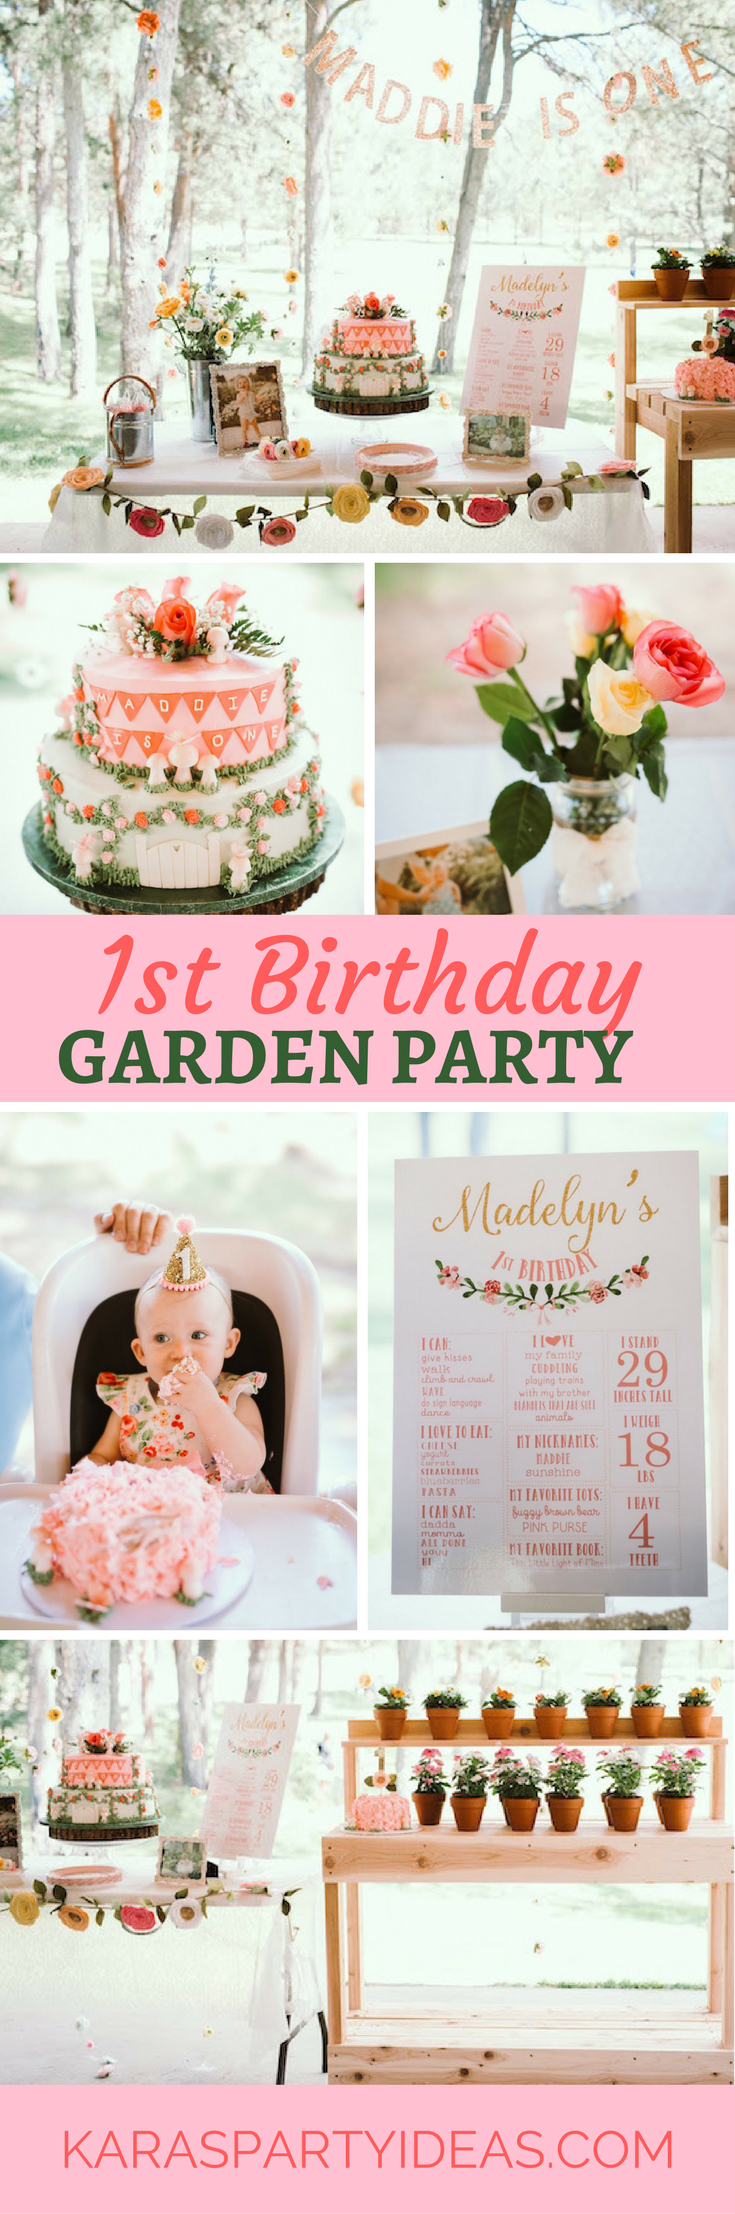 1st Birthday Garden Party via Kara's Party Ideas